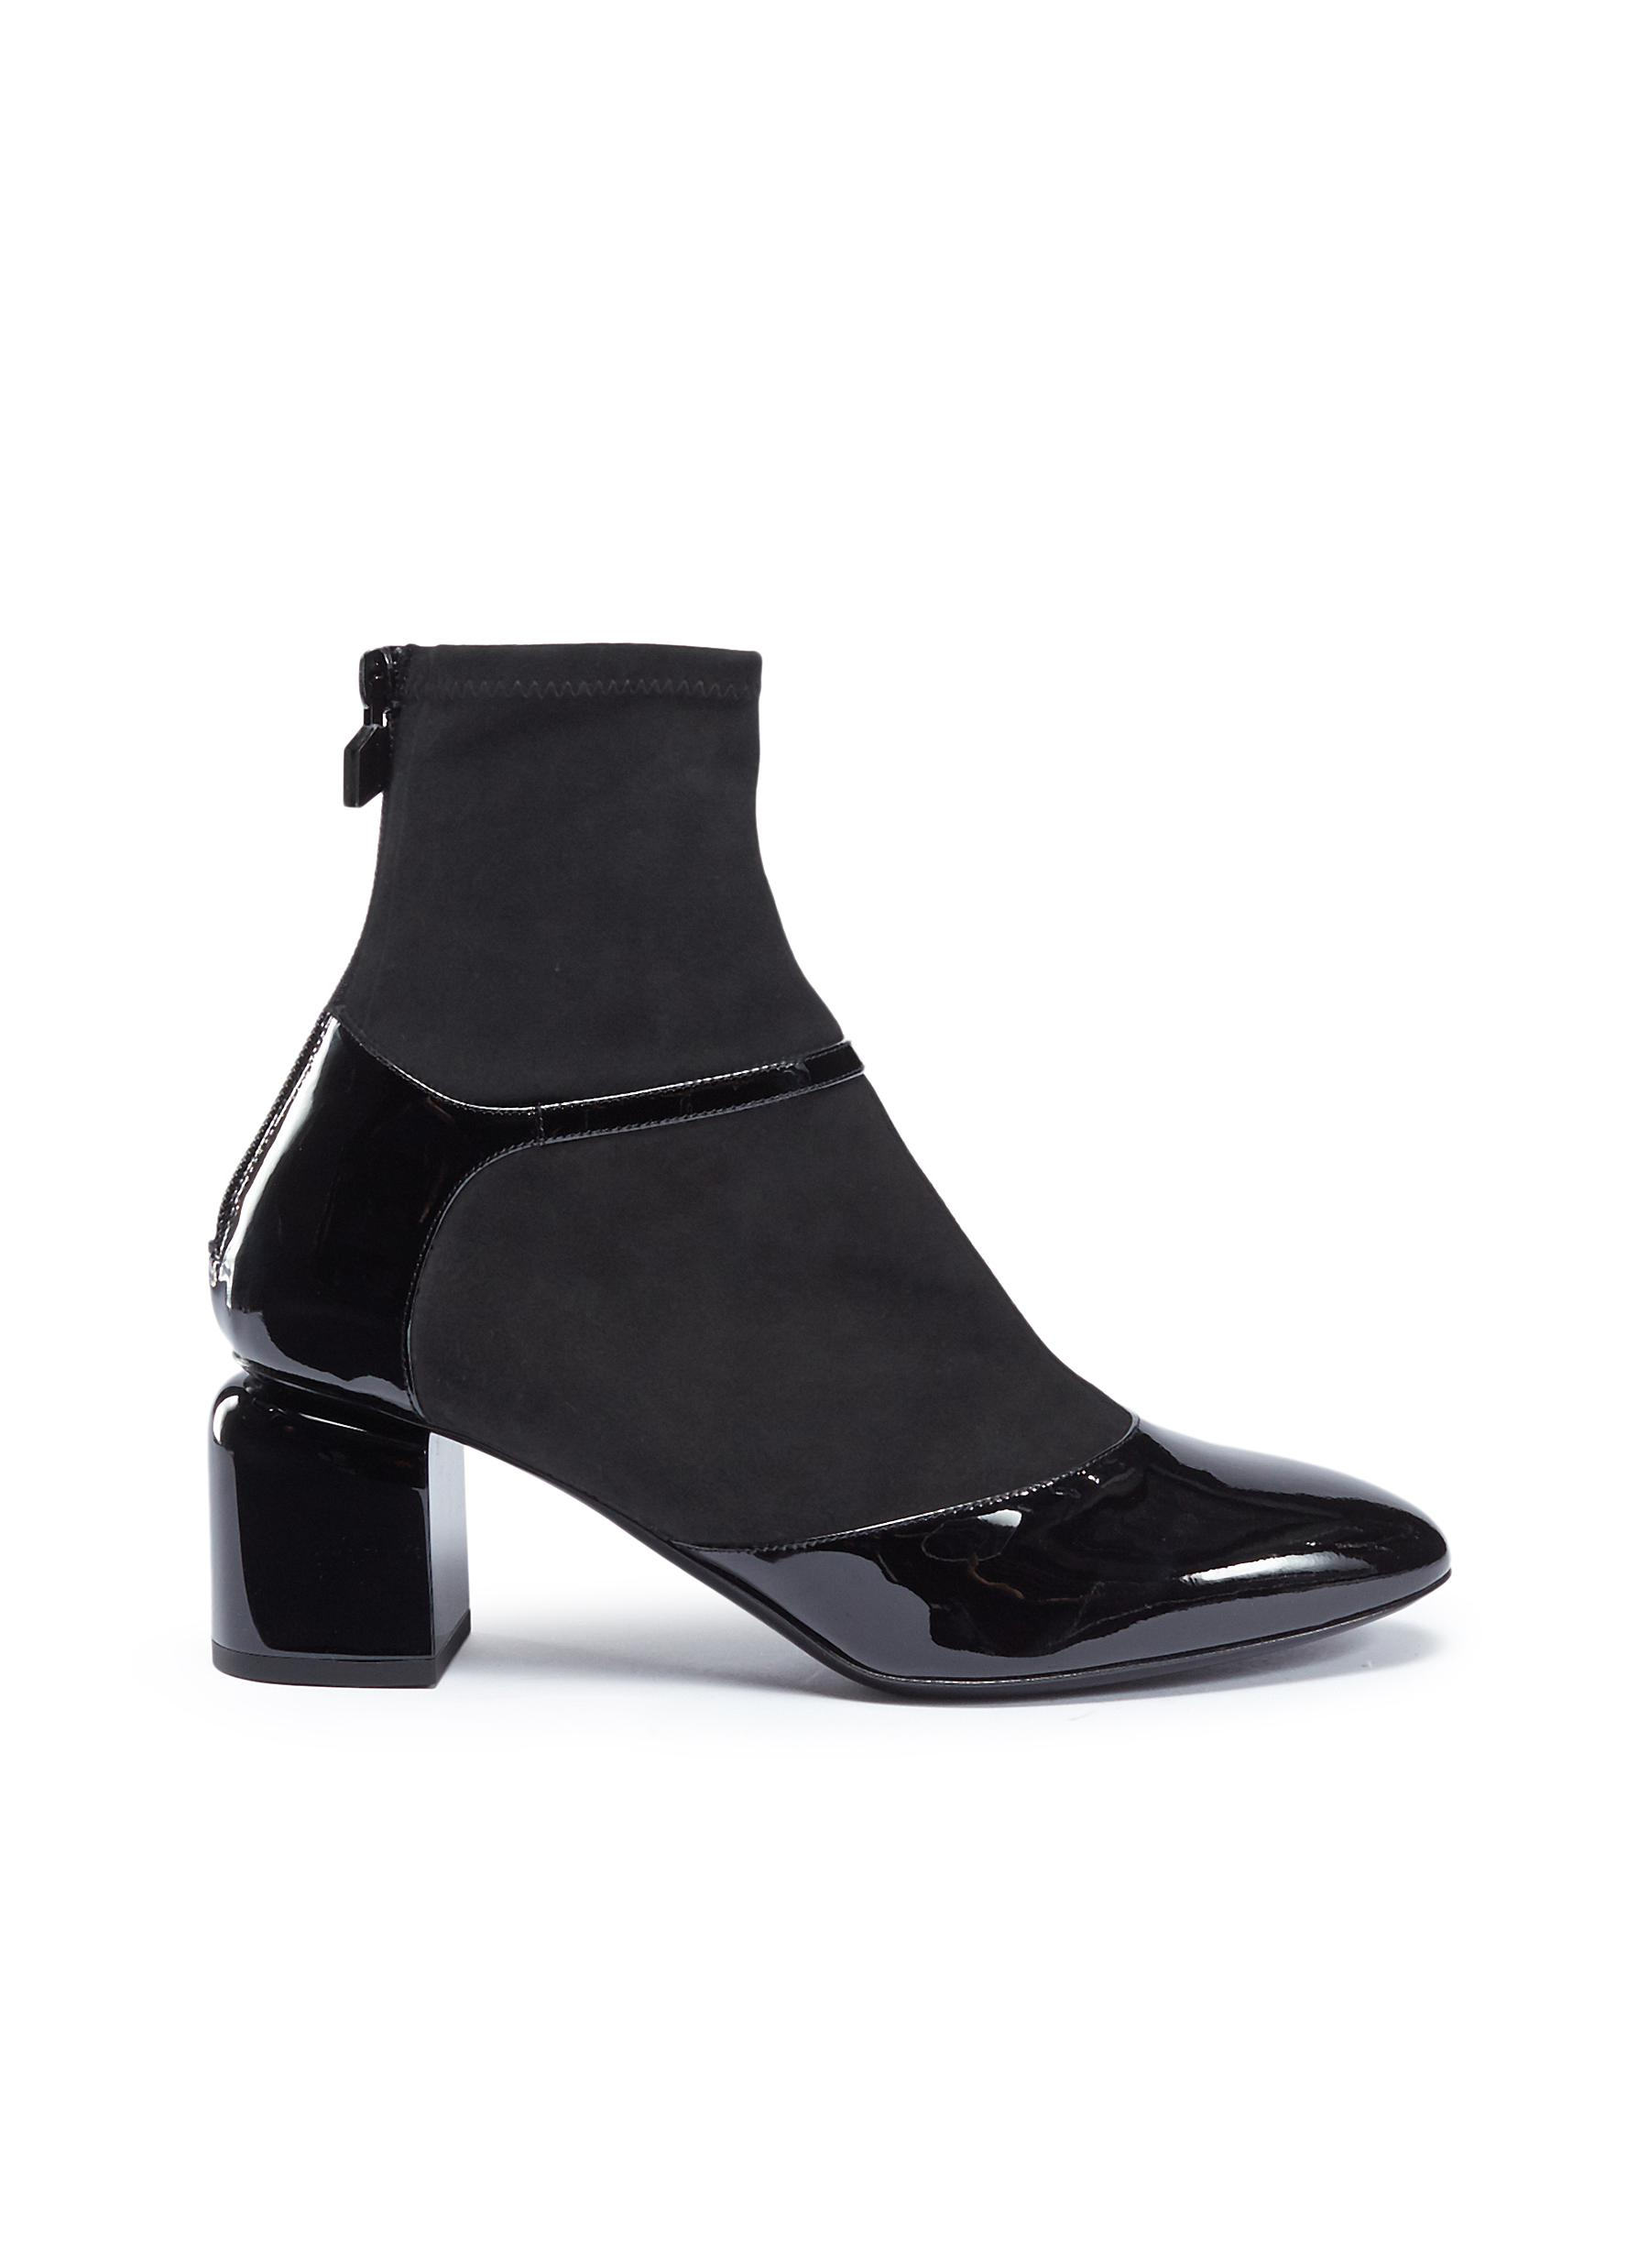 3704720b7ec Main View - Click To Enlarge - Pierre Hardy -  Laura  patent leather stretch